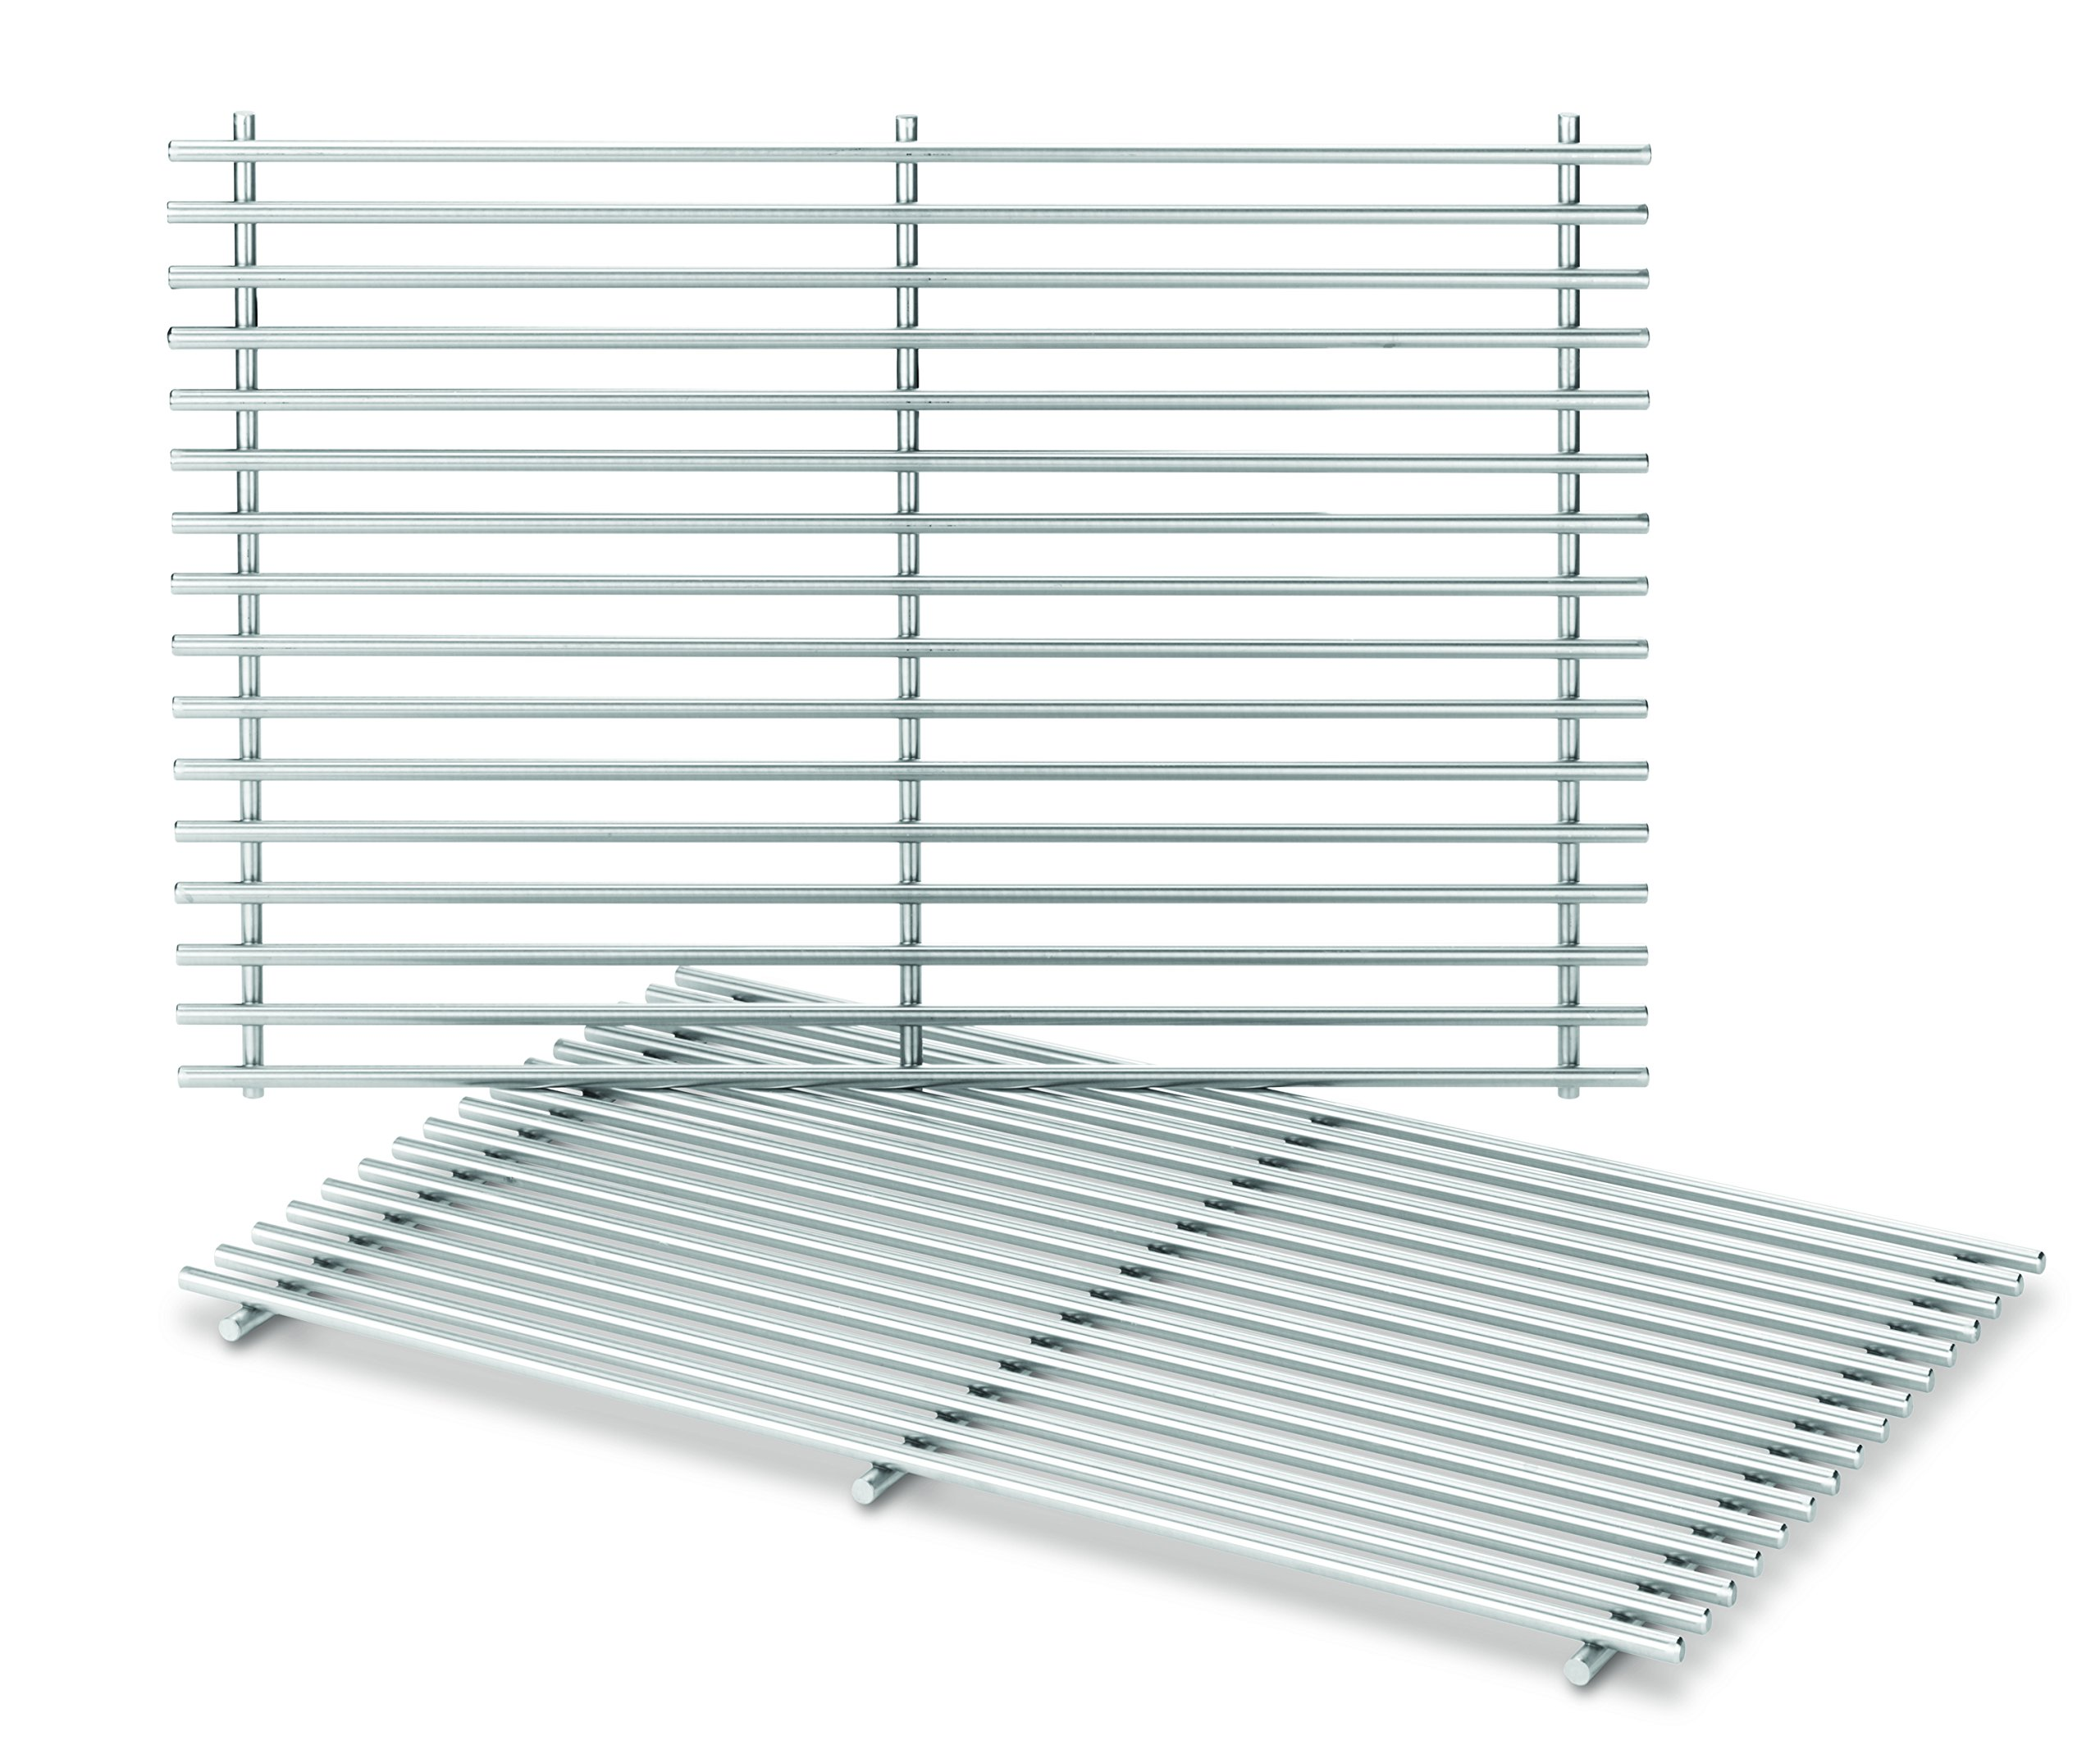 Weber Stephen Products 7639 2pk Stainless Steel Cooking Grate (17.3 x 11.8 x 0.5)